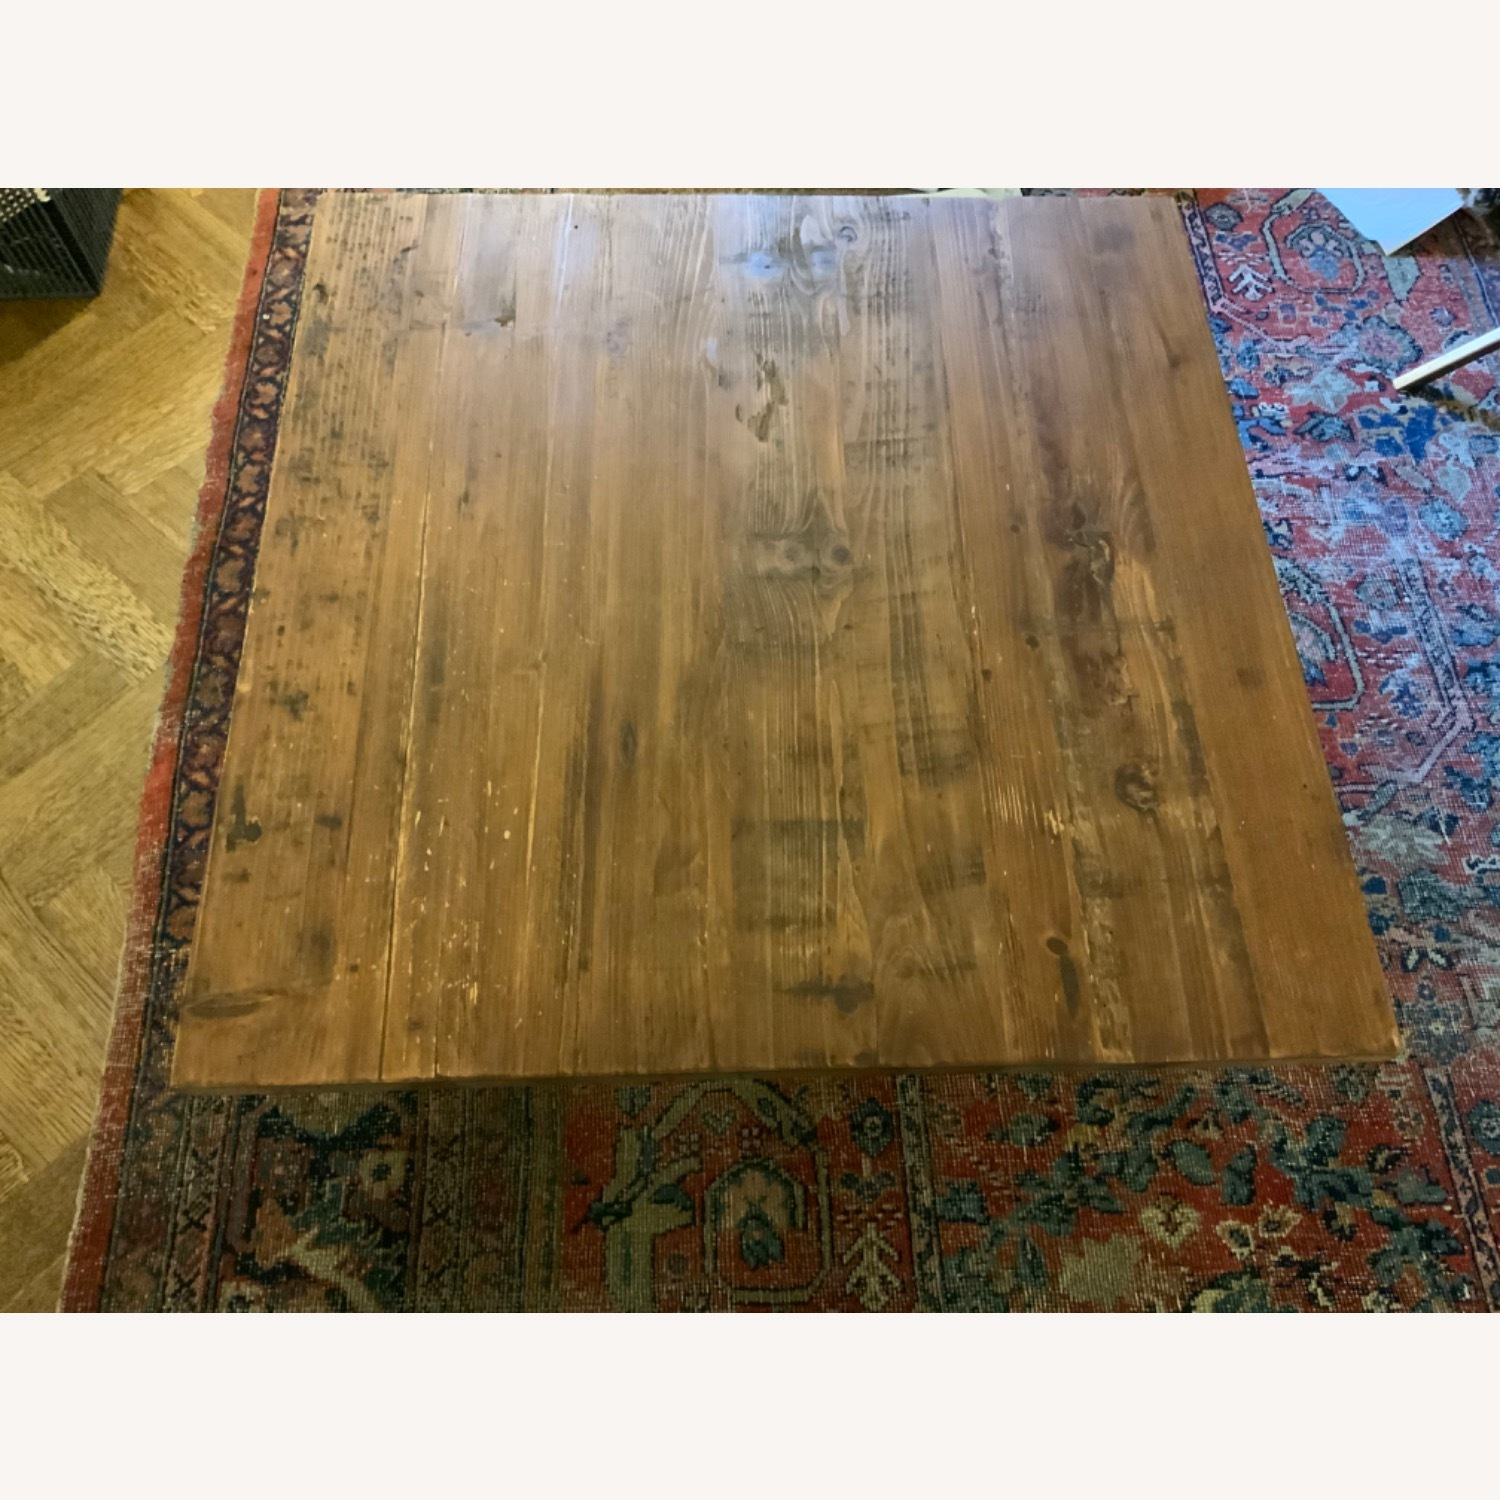 West Elm Reclaimed Wood Coffee Table - image-4